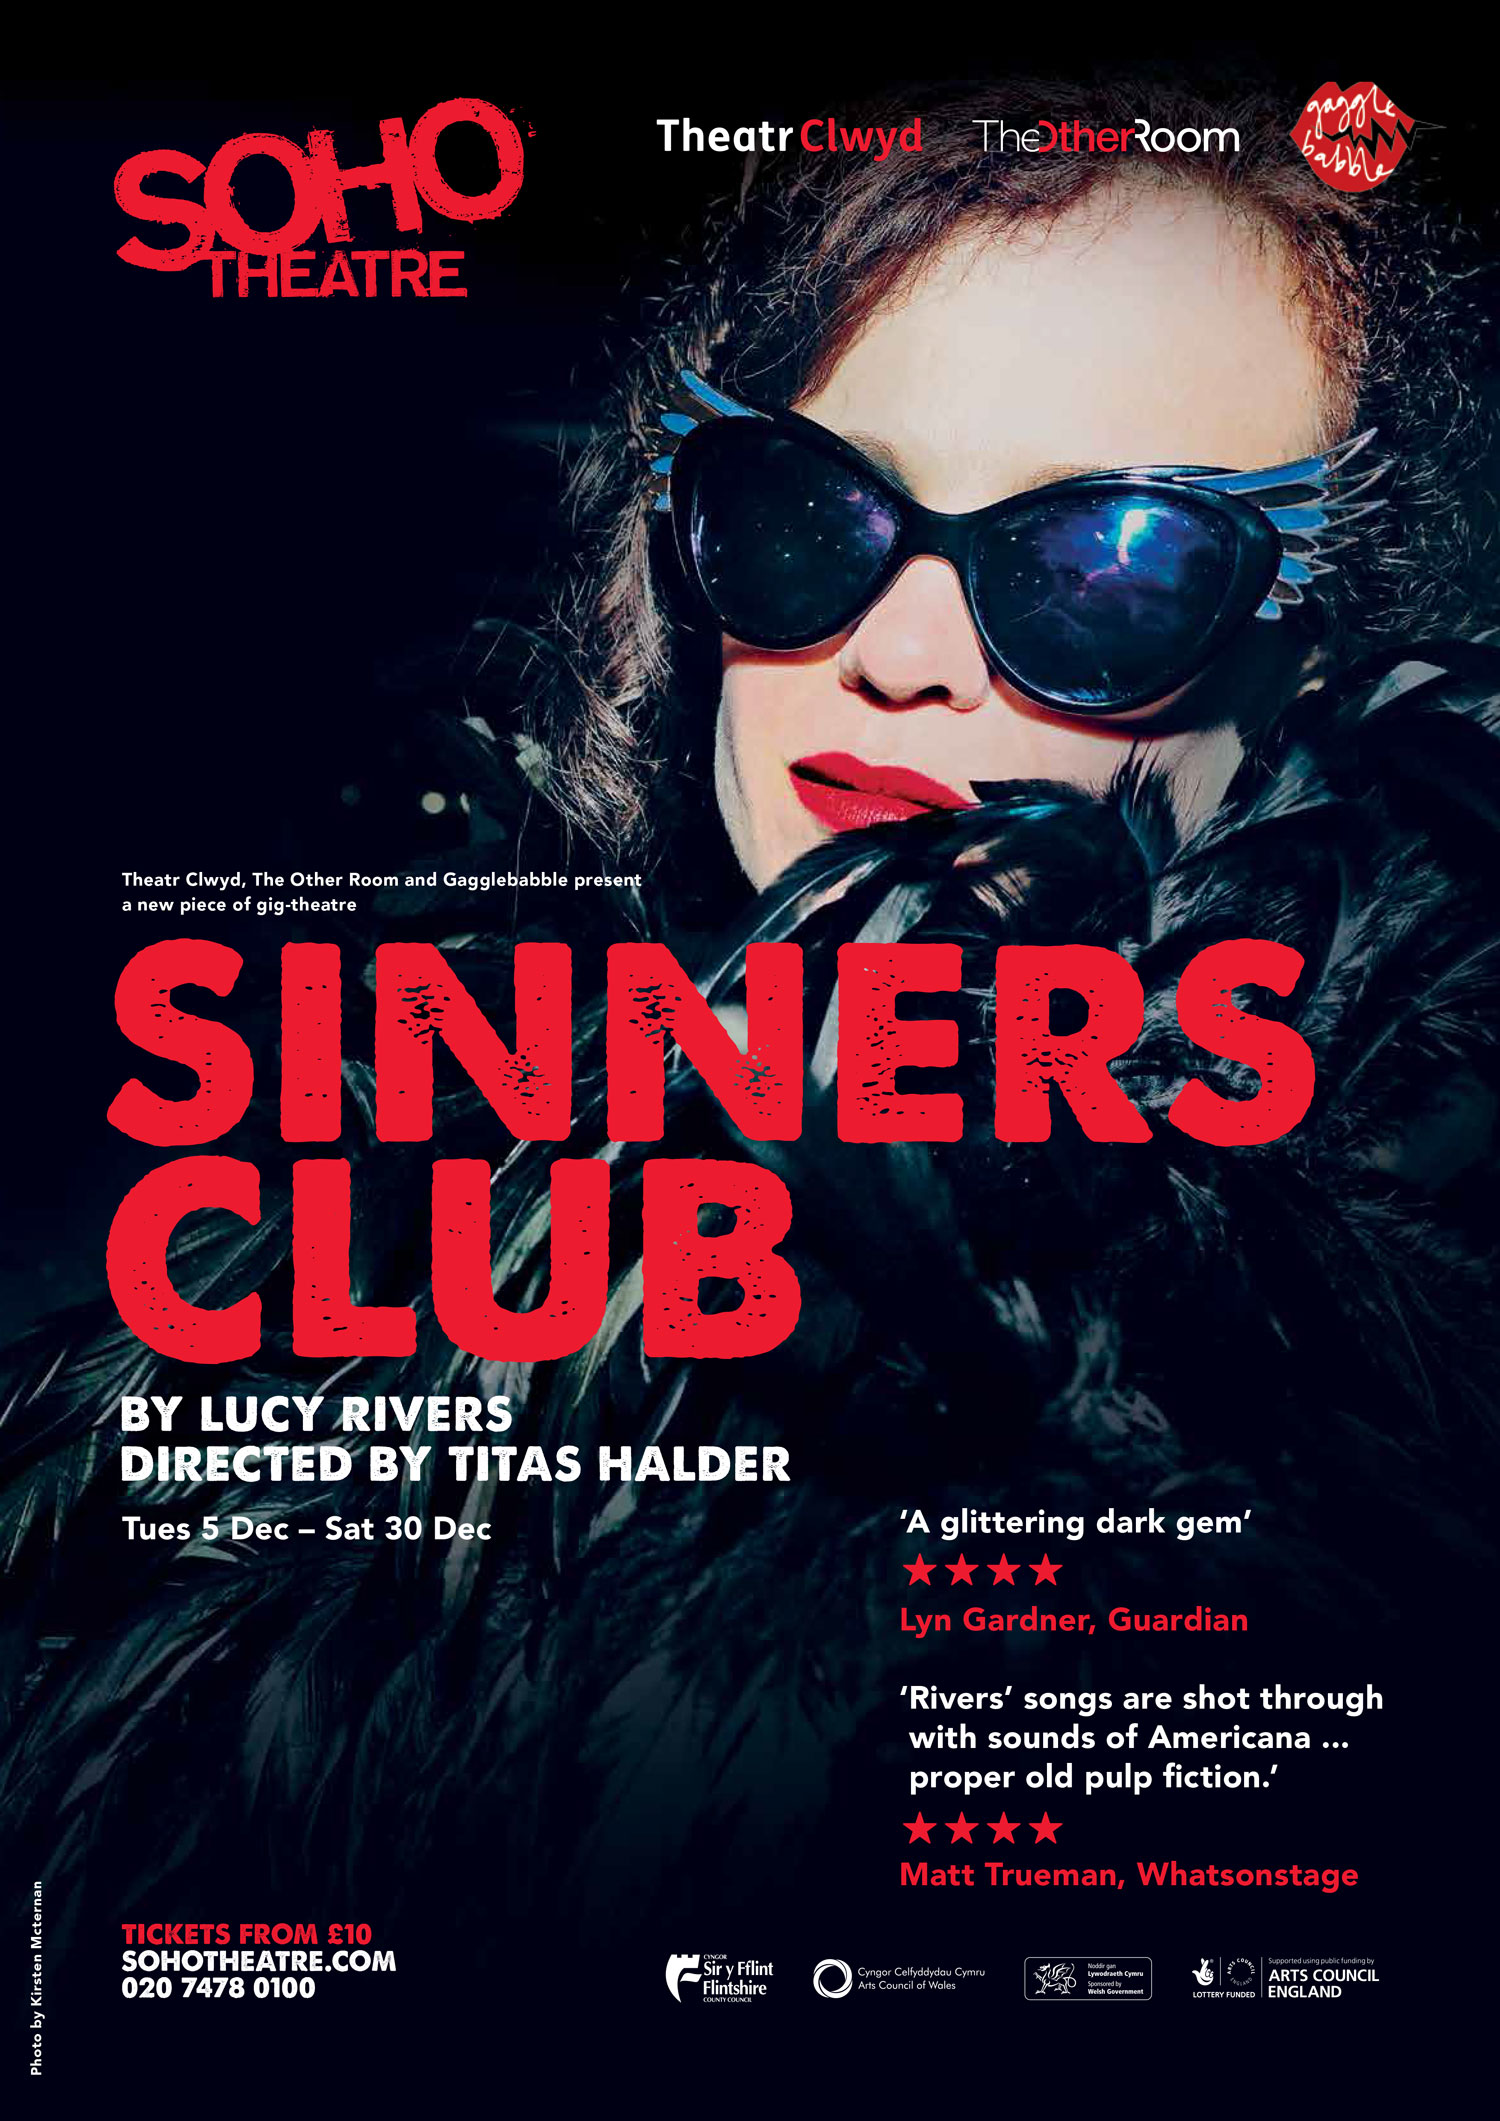 Sinners Club at the Soho Theatre